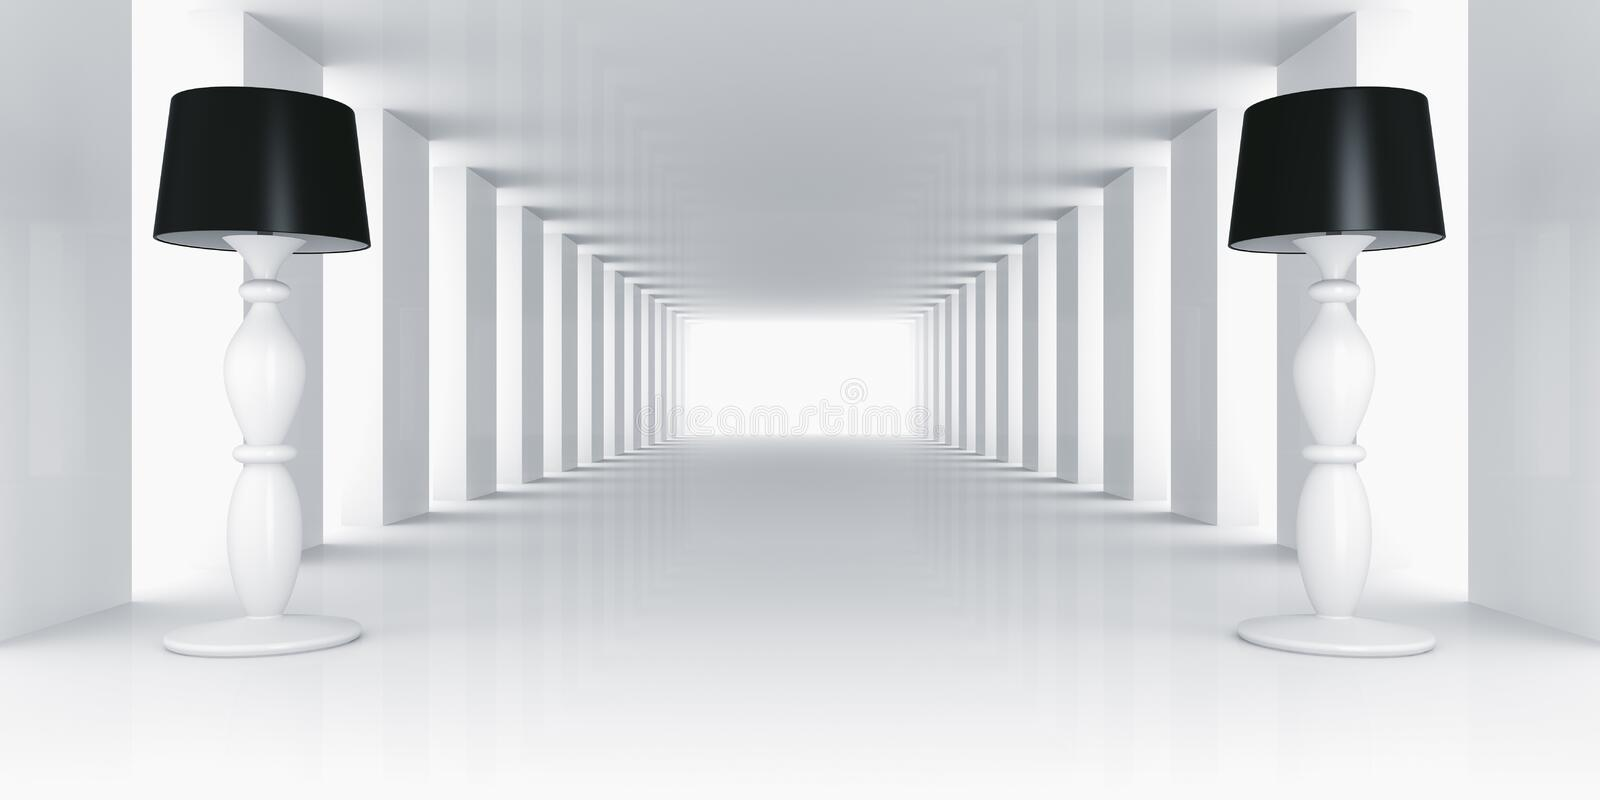 Lamps in empty white room